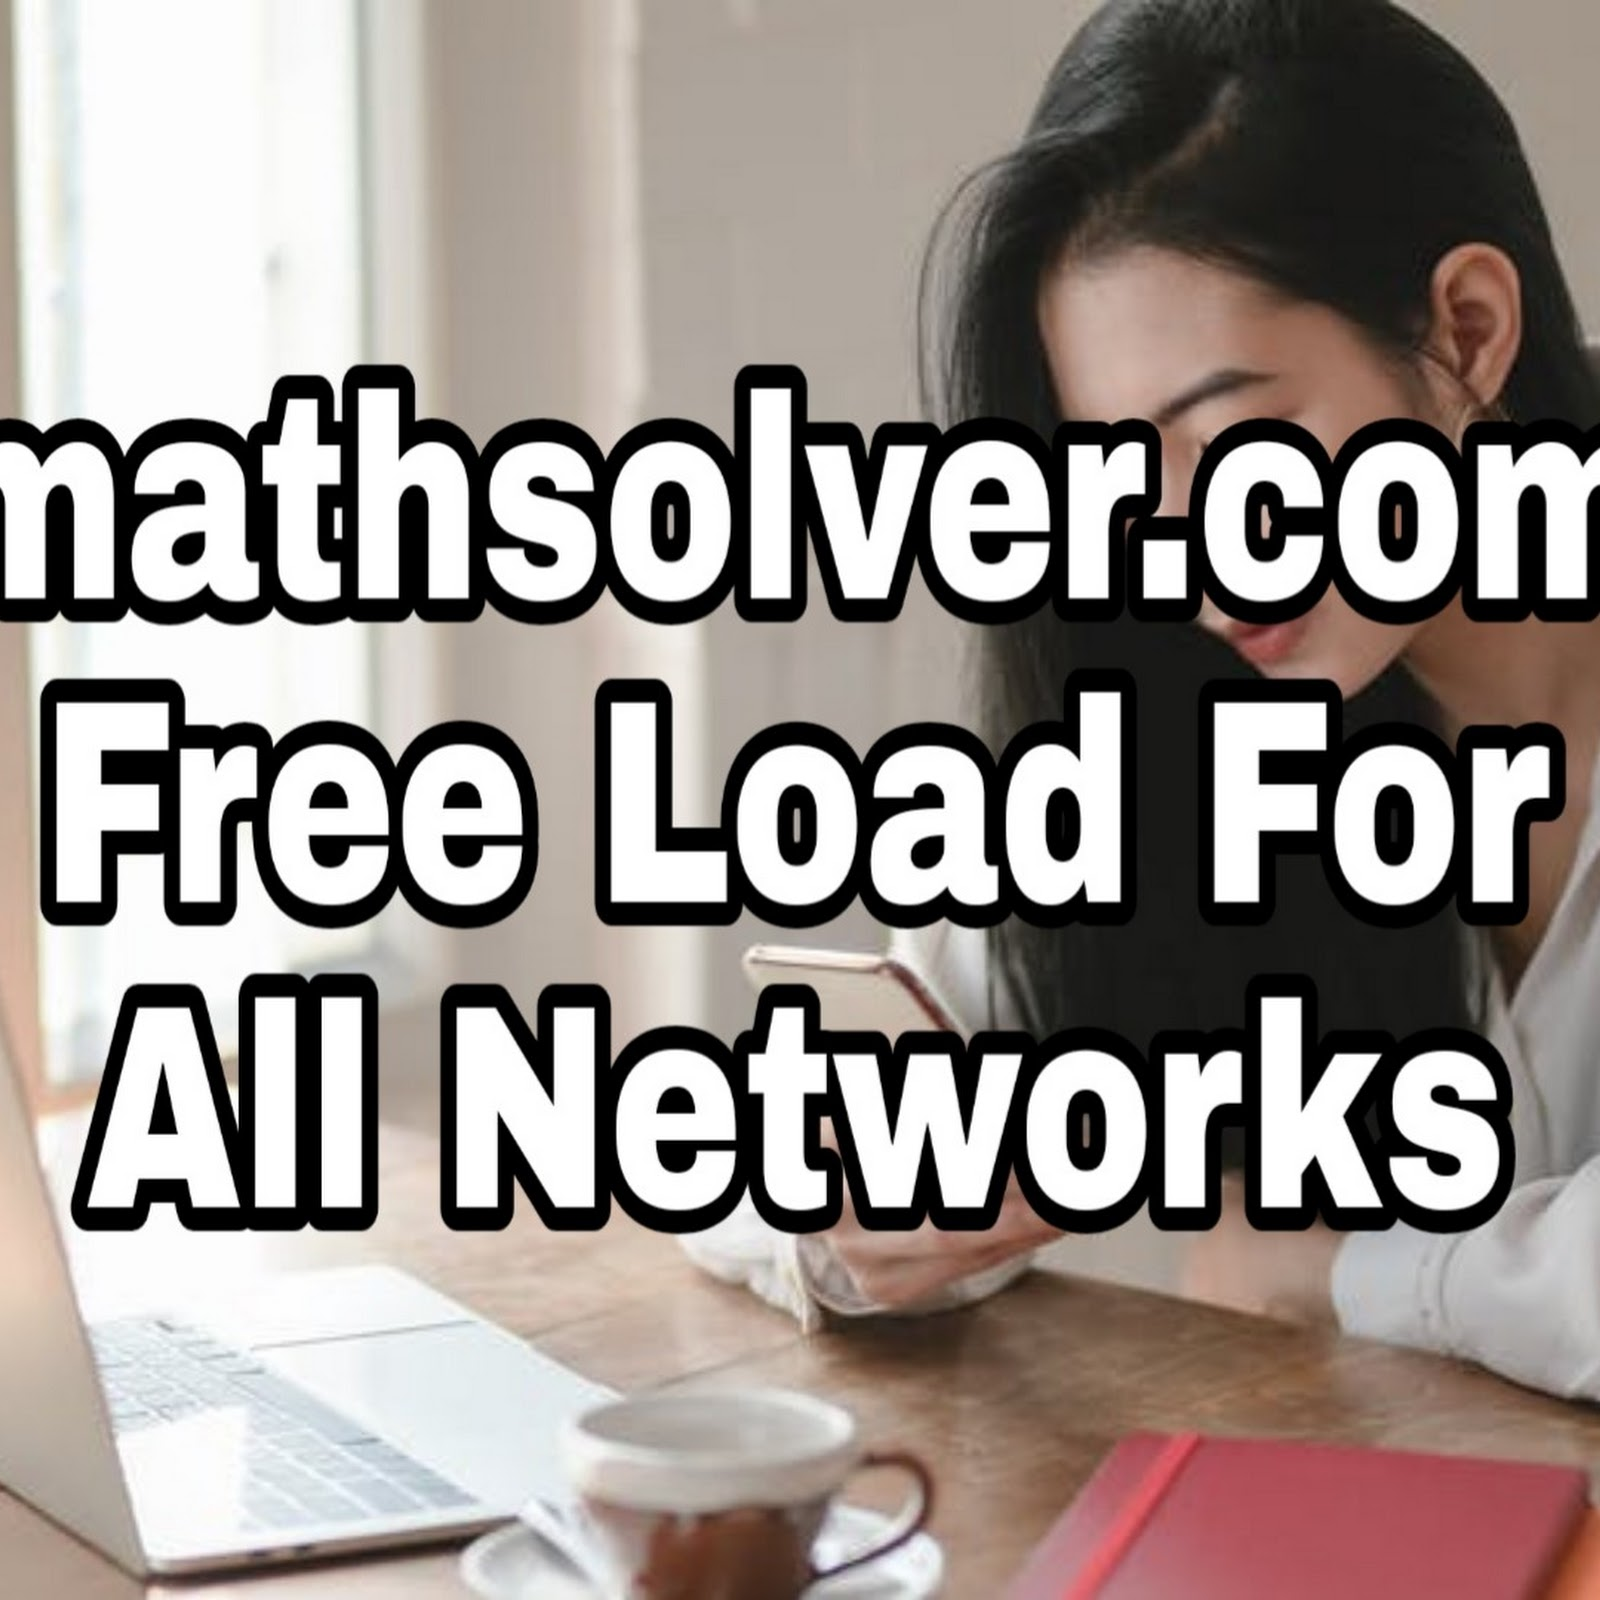 Mathsolver.com: Free 500 Load For Smart TNT SUN Globe TM